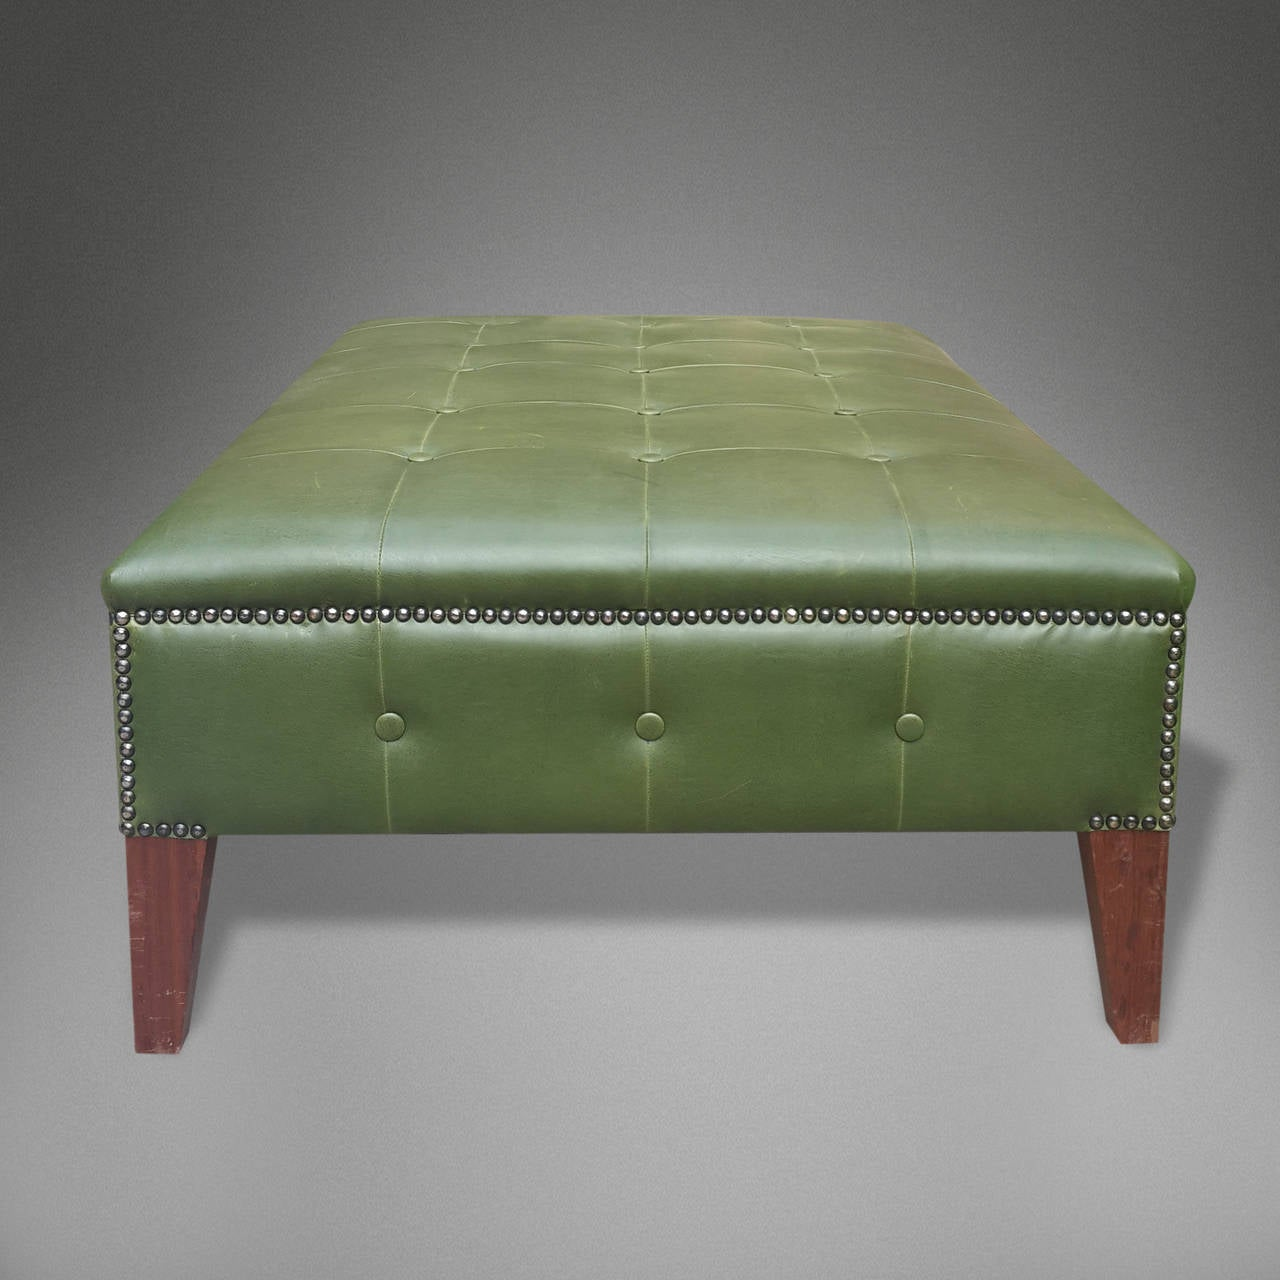 moroccan leather ottoman for sale at 1stdibs. Black Bedroom Furniture Sets. Home Design Ideas